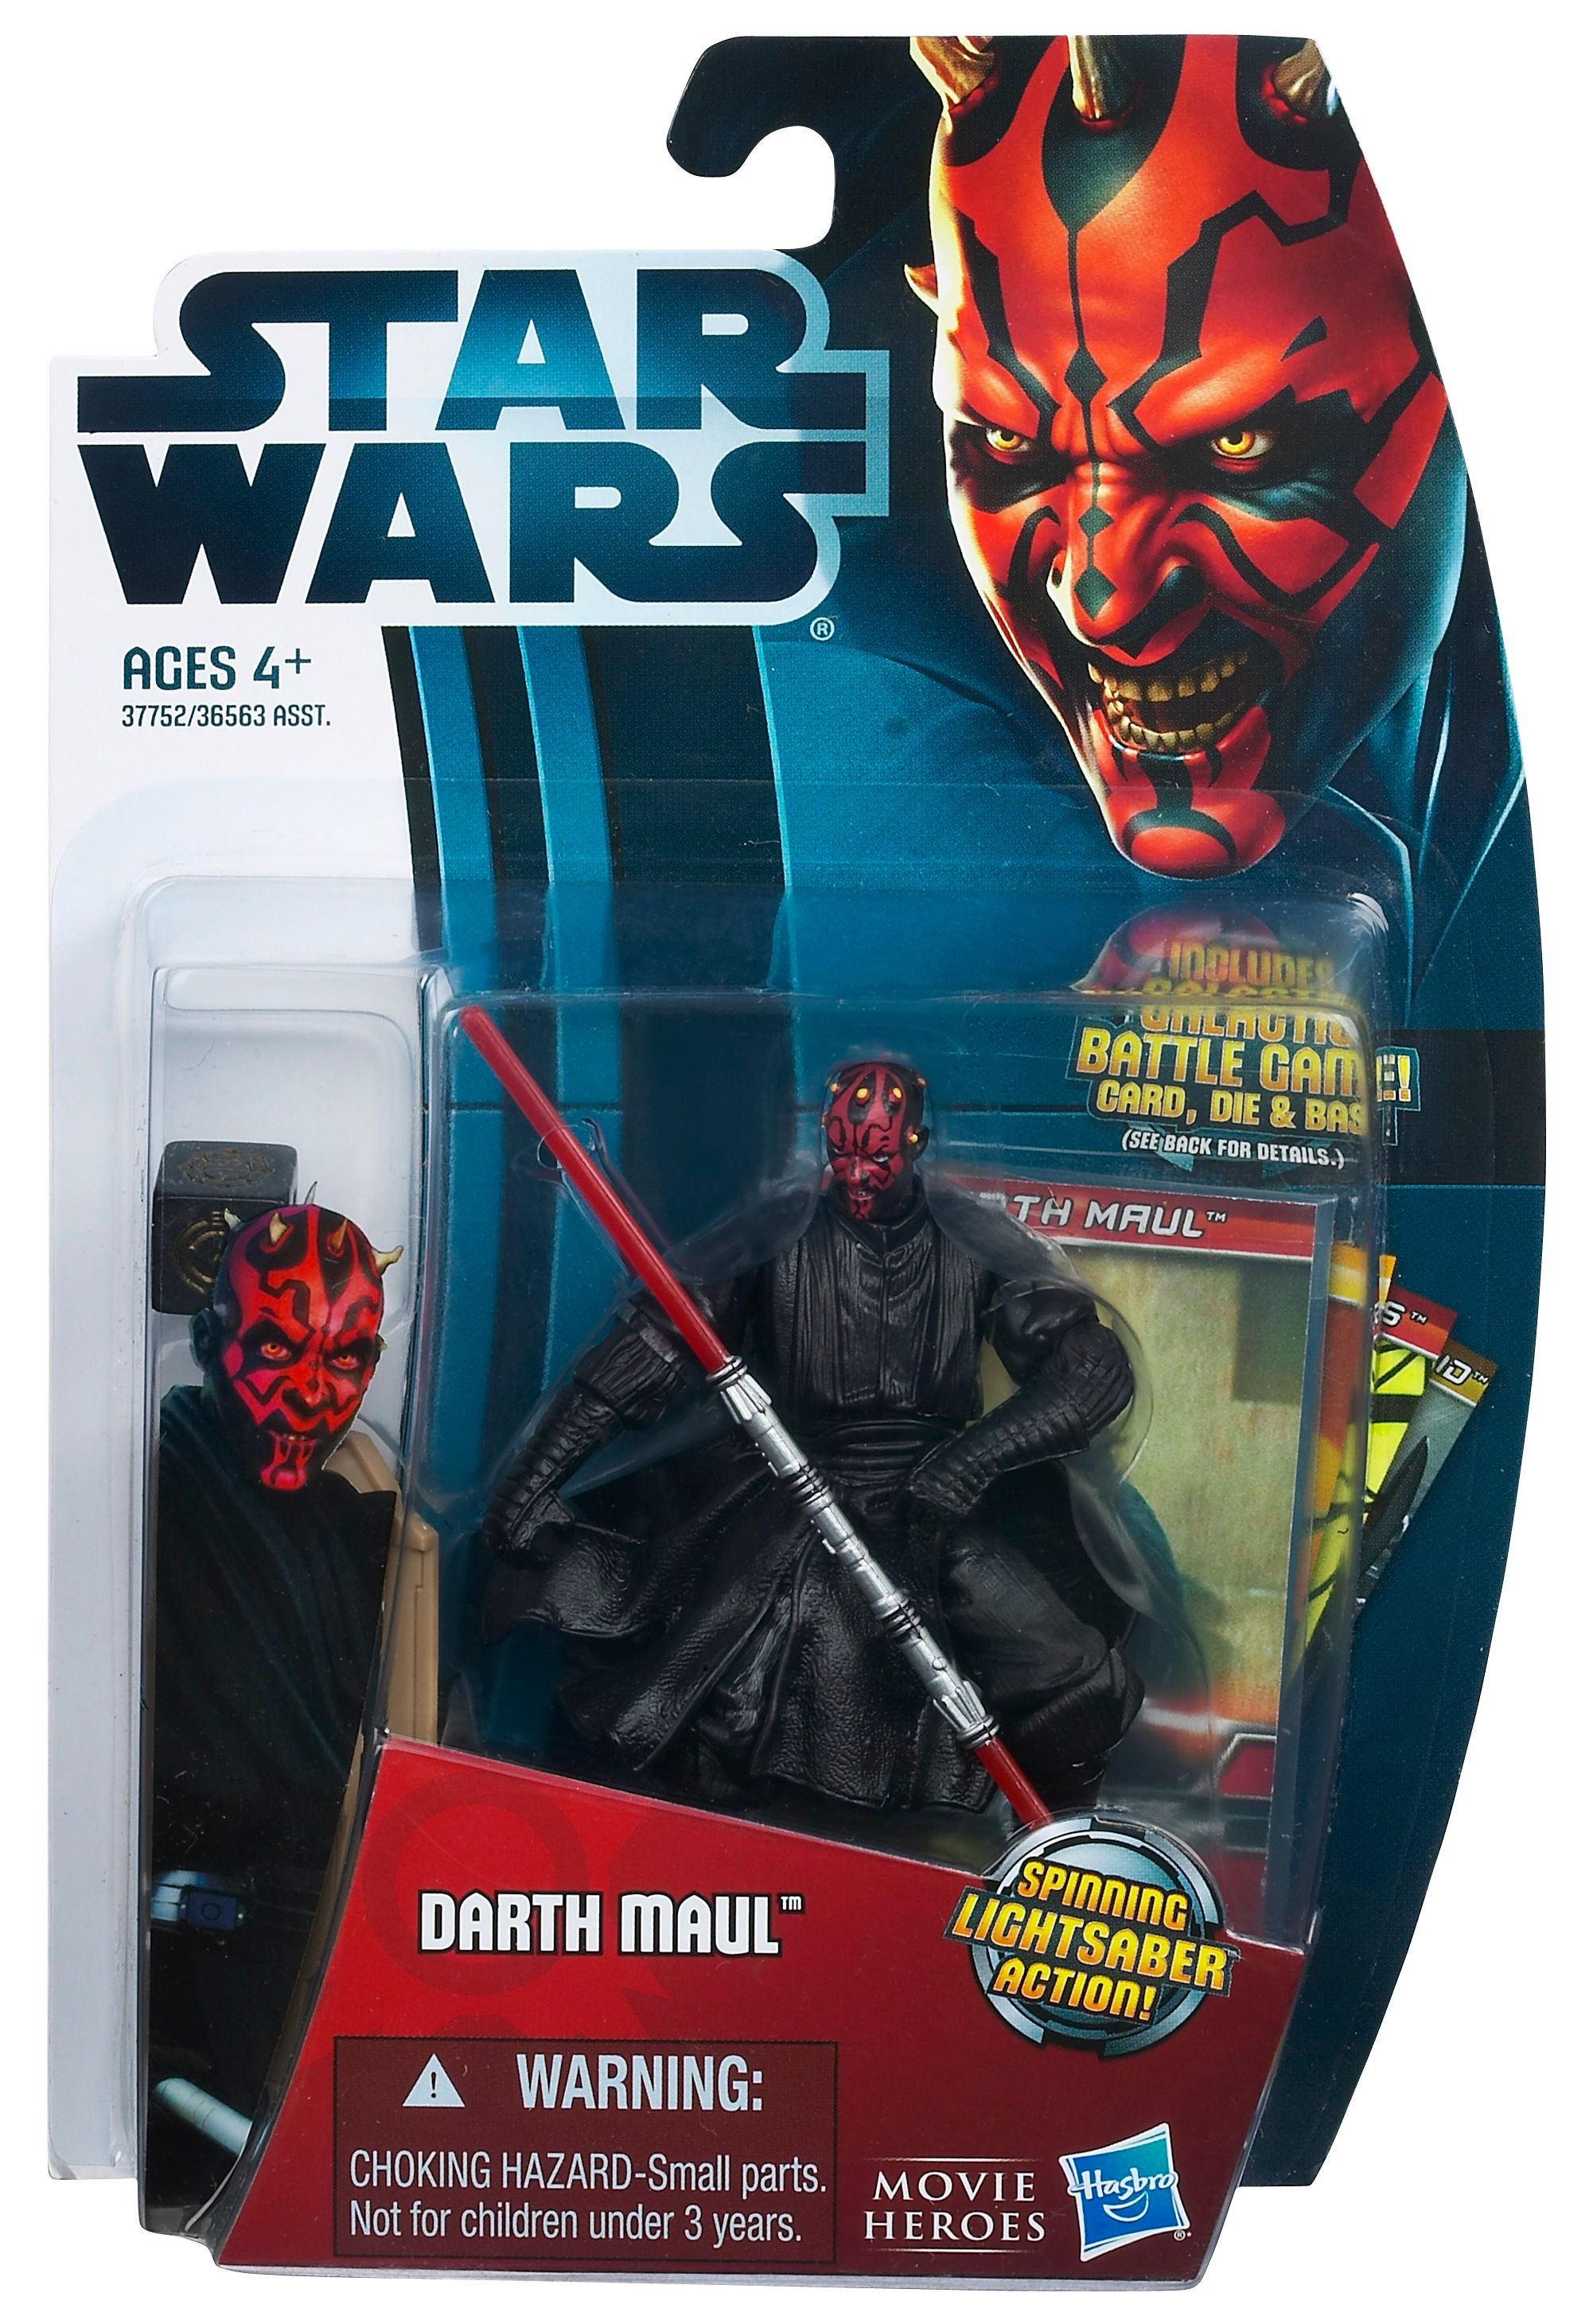 Star Wars Darth Maul Movie Heroes Figure